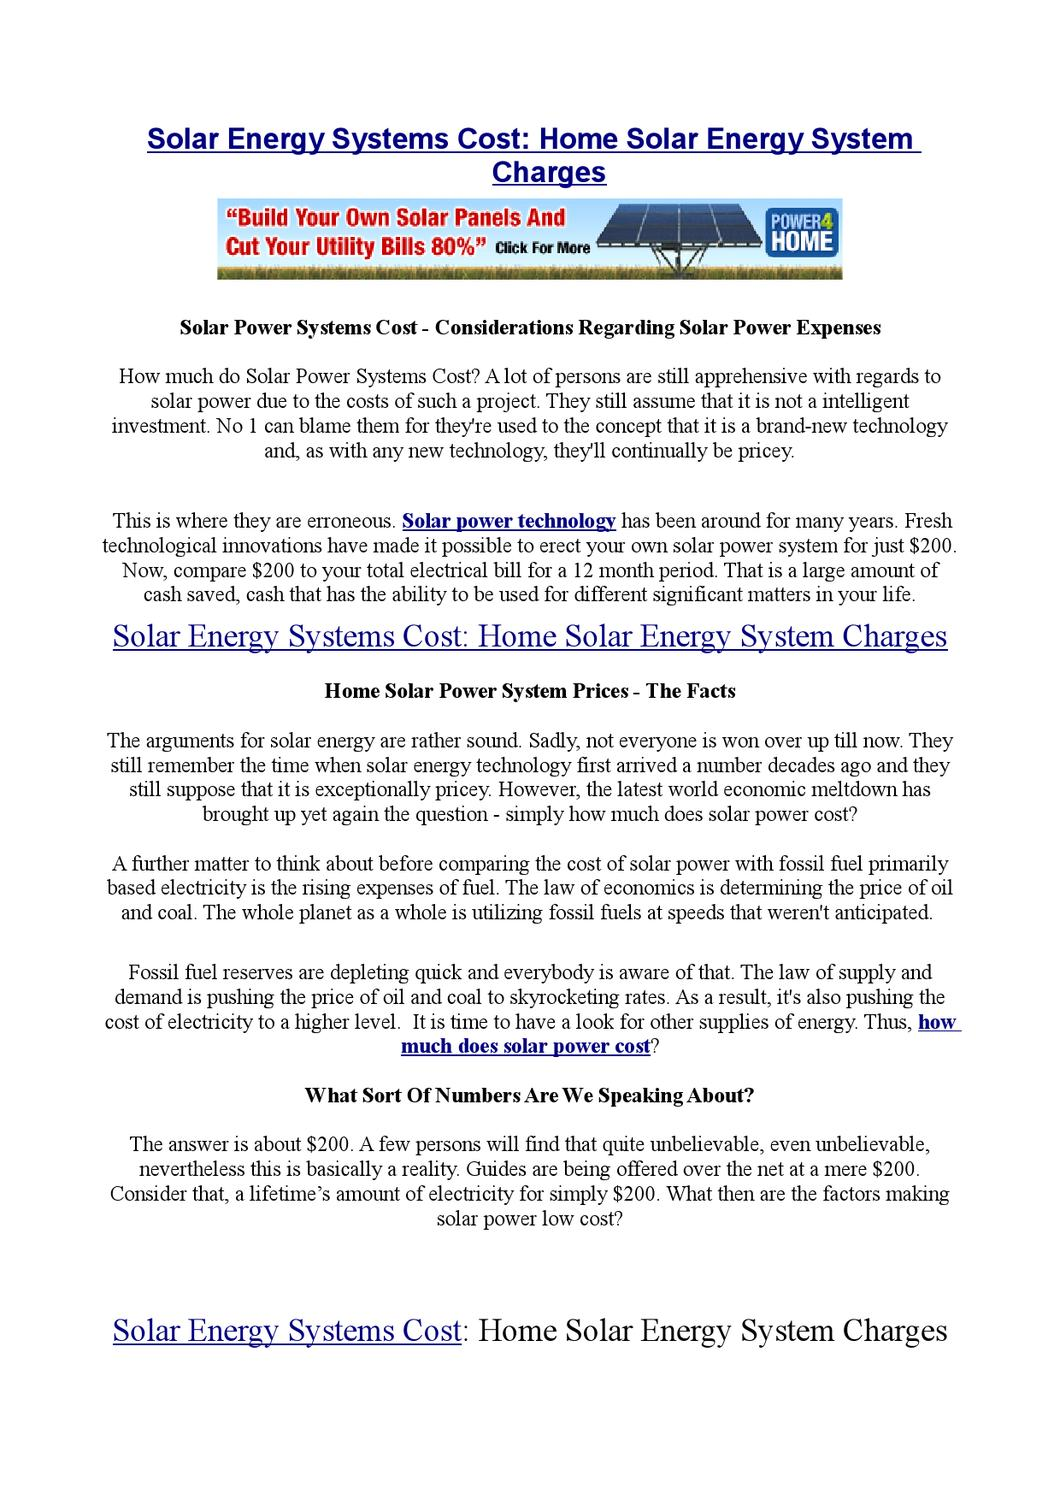 Solar Energy Systems Cost: Home Solar Energy System Charges